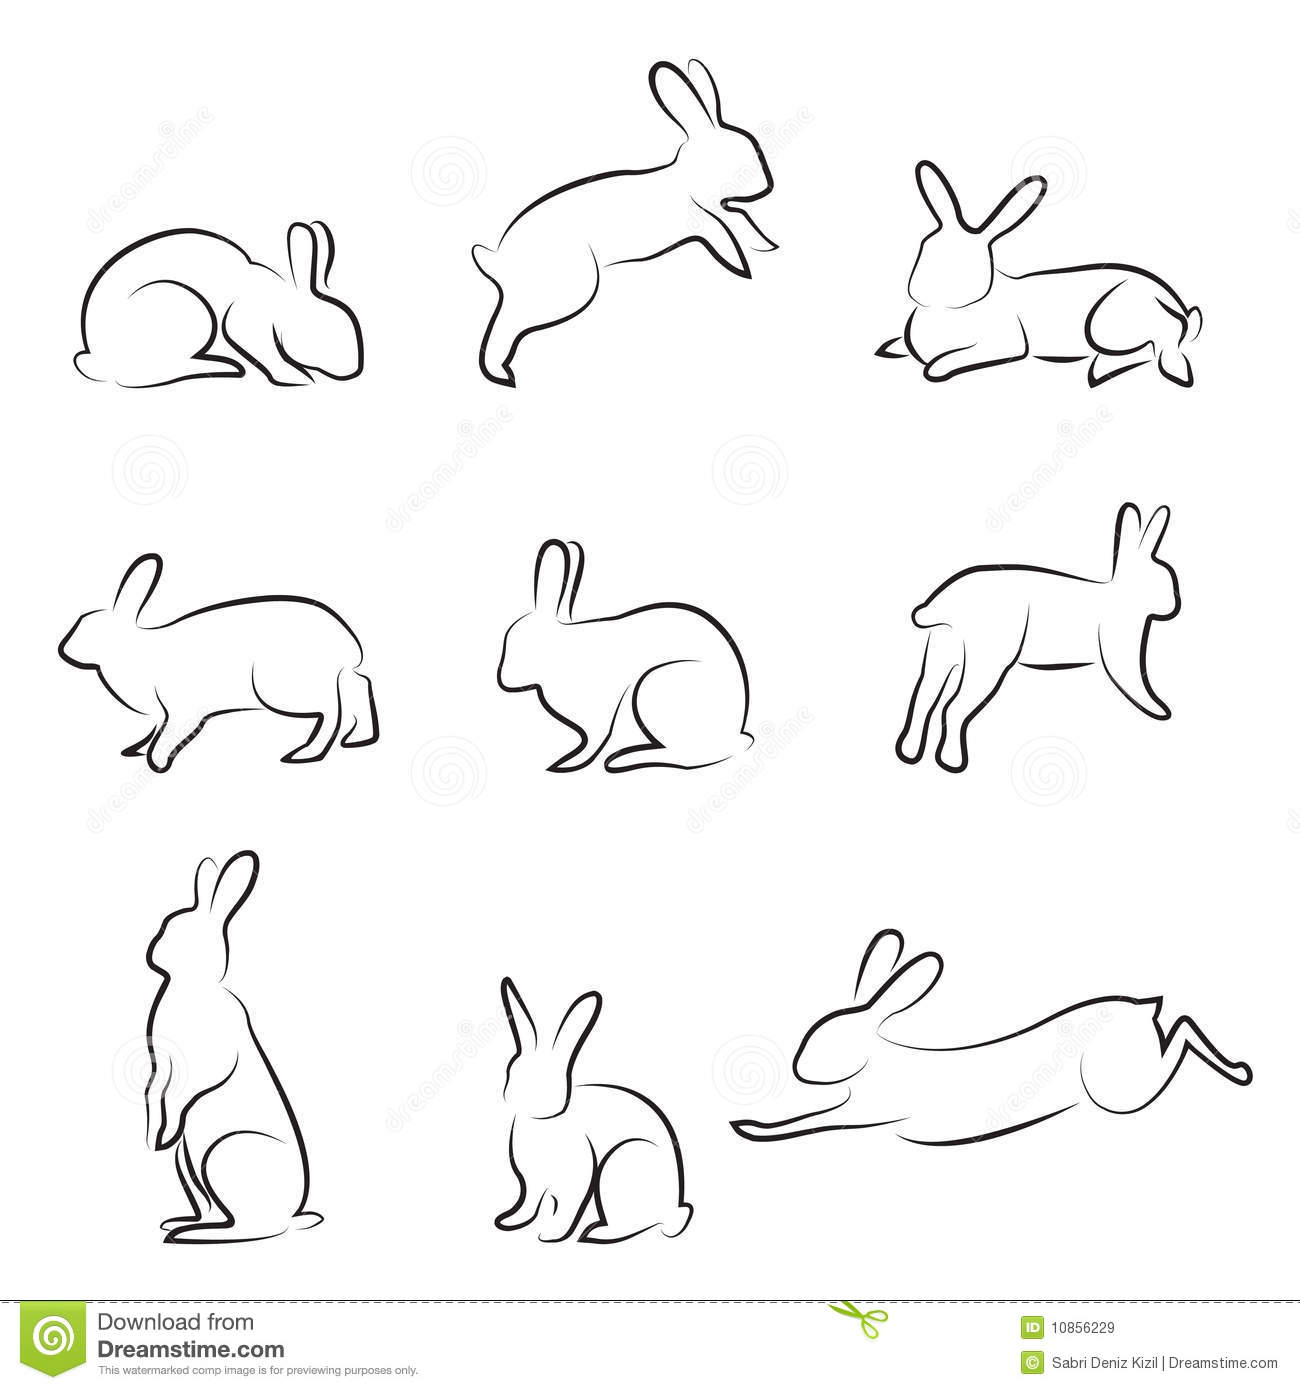 how to draw a bunny rabbit face